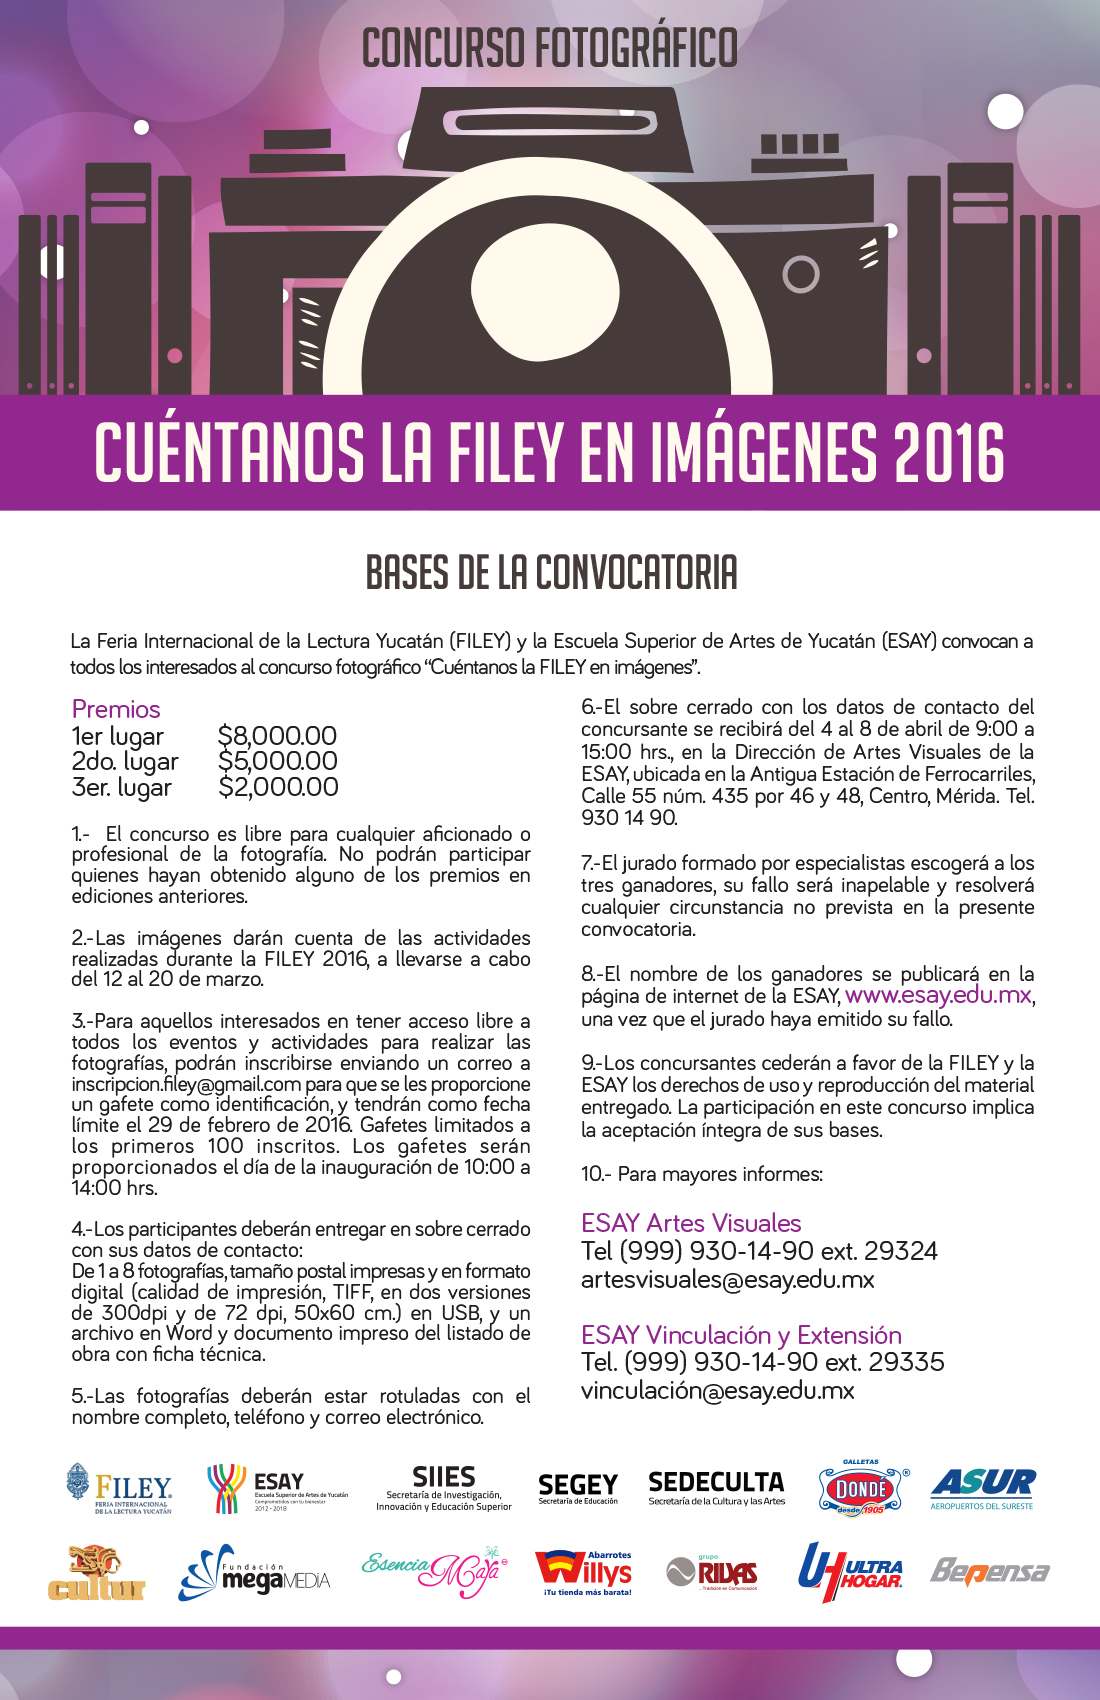 CUENTANOS LA FILEY 2016